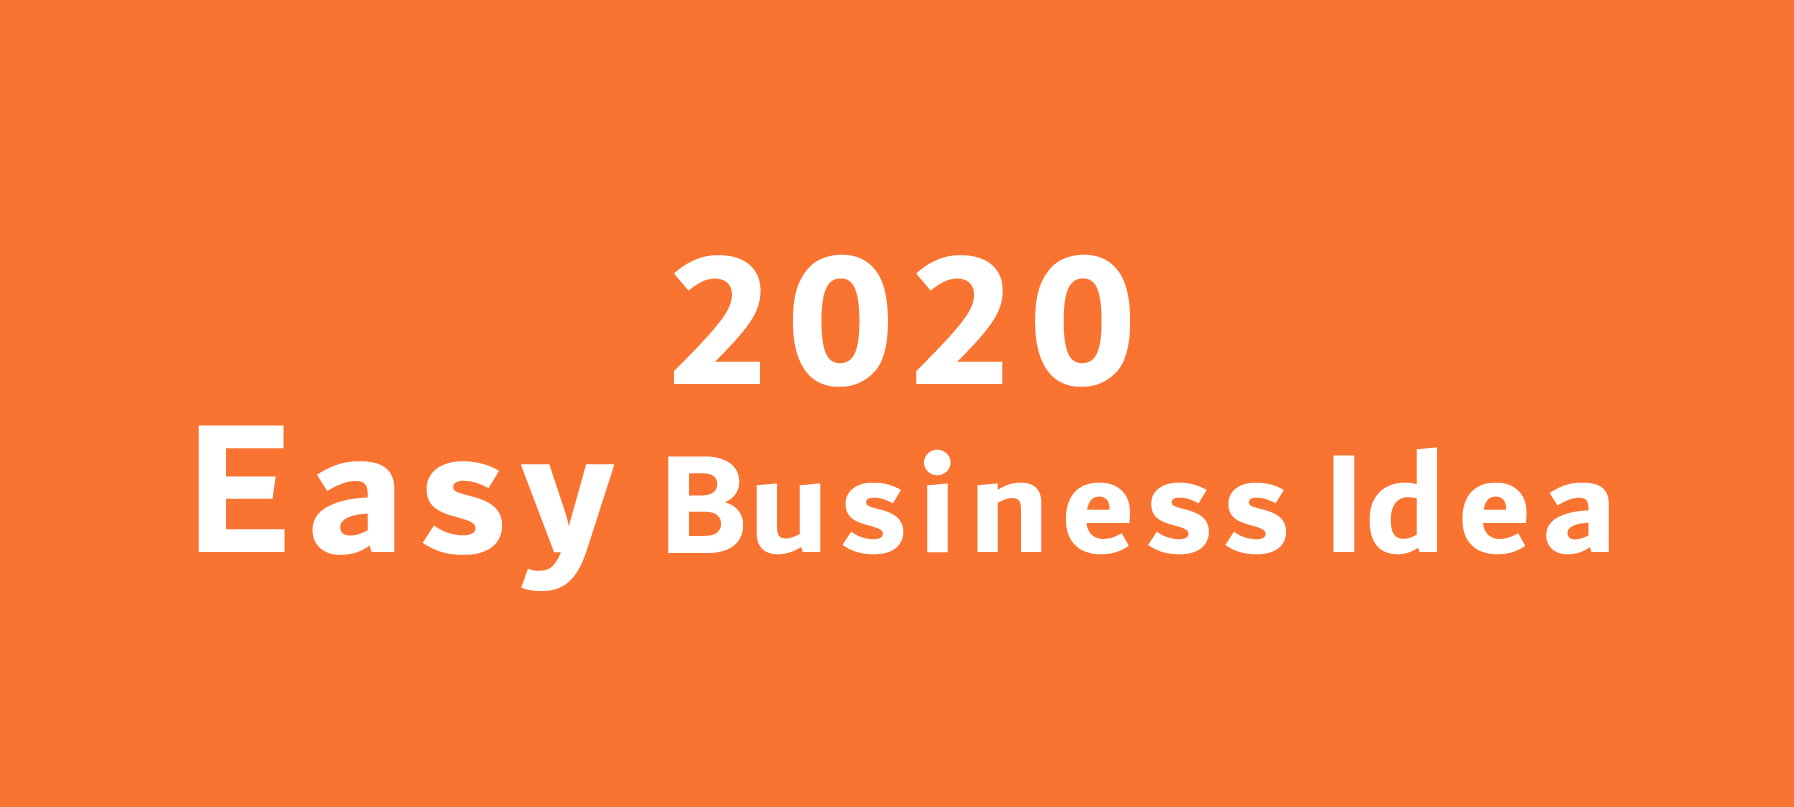 Top 6 Easy Business Ideas that can Make you Successful in 2020